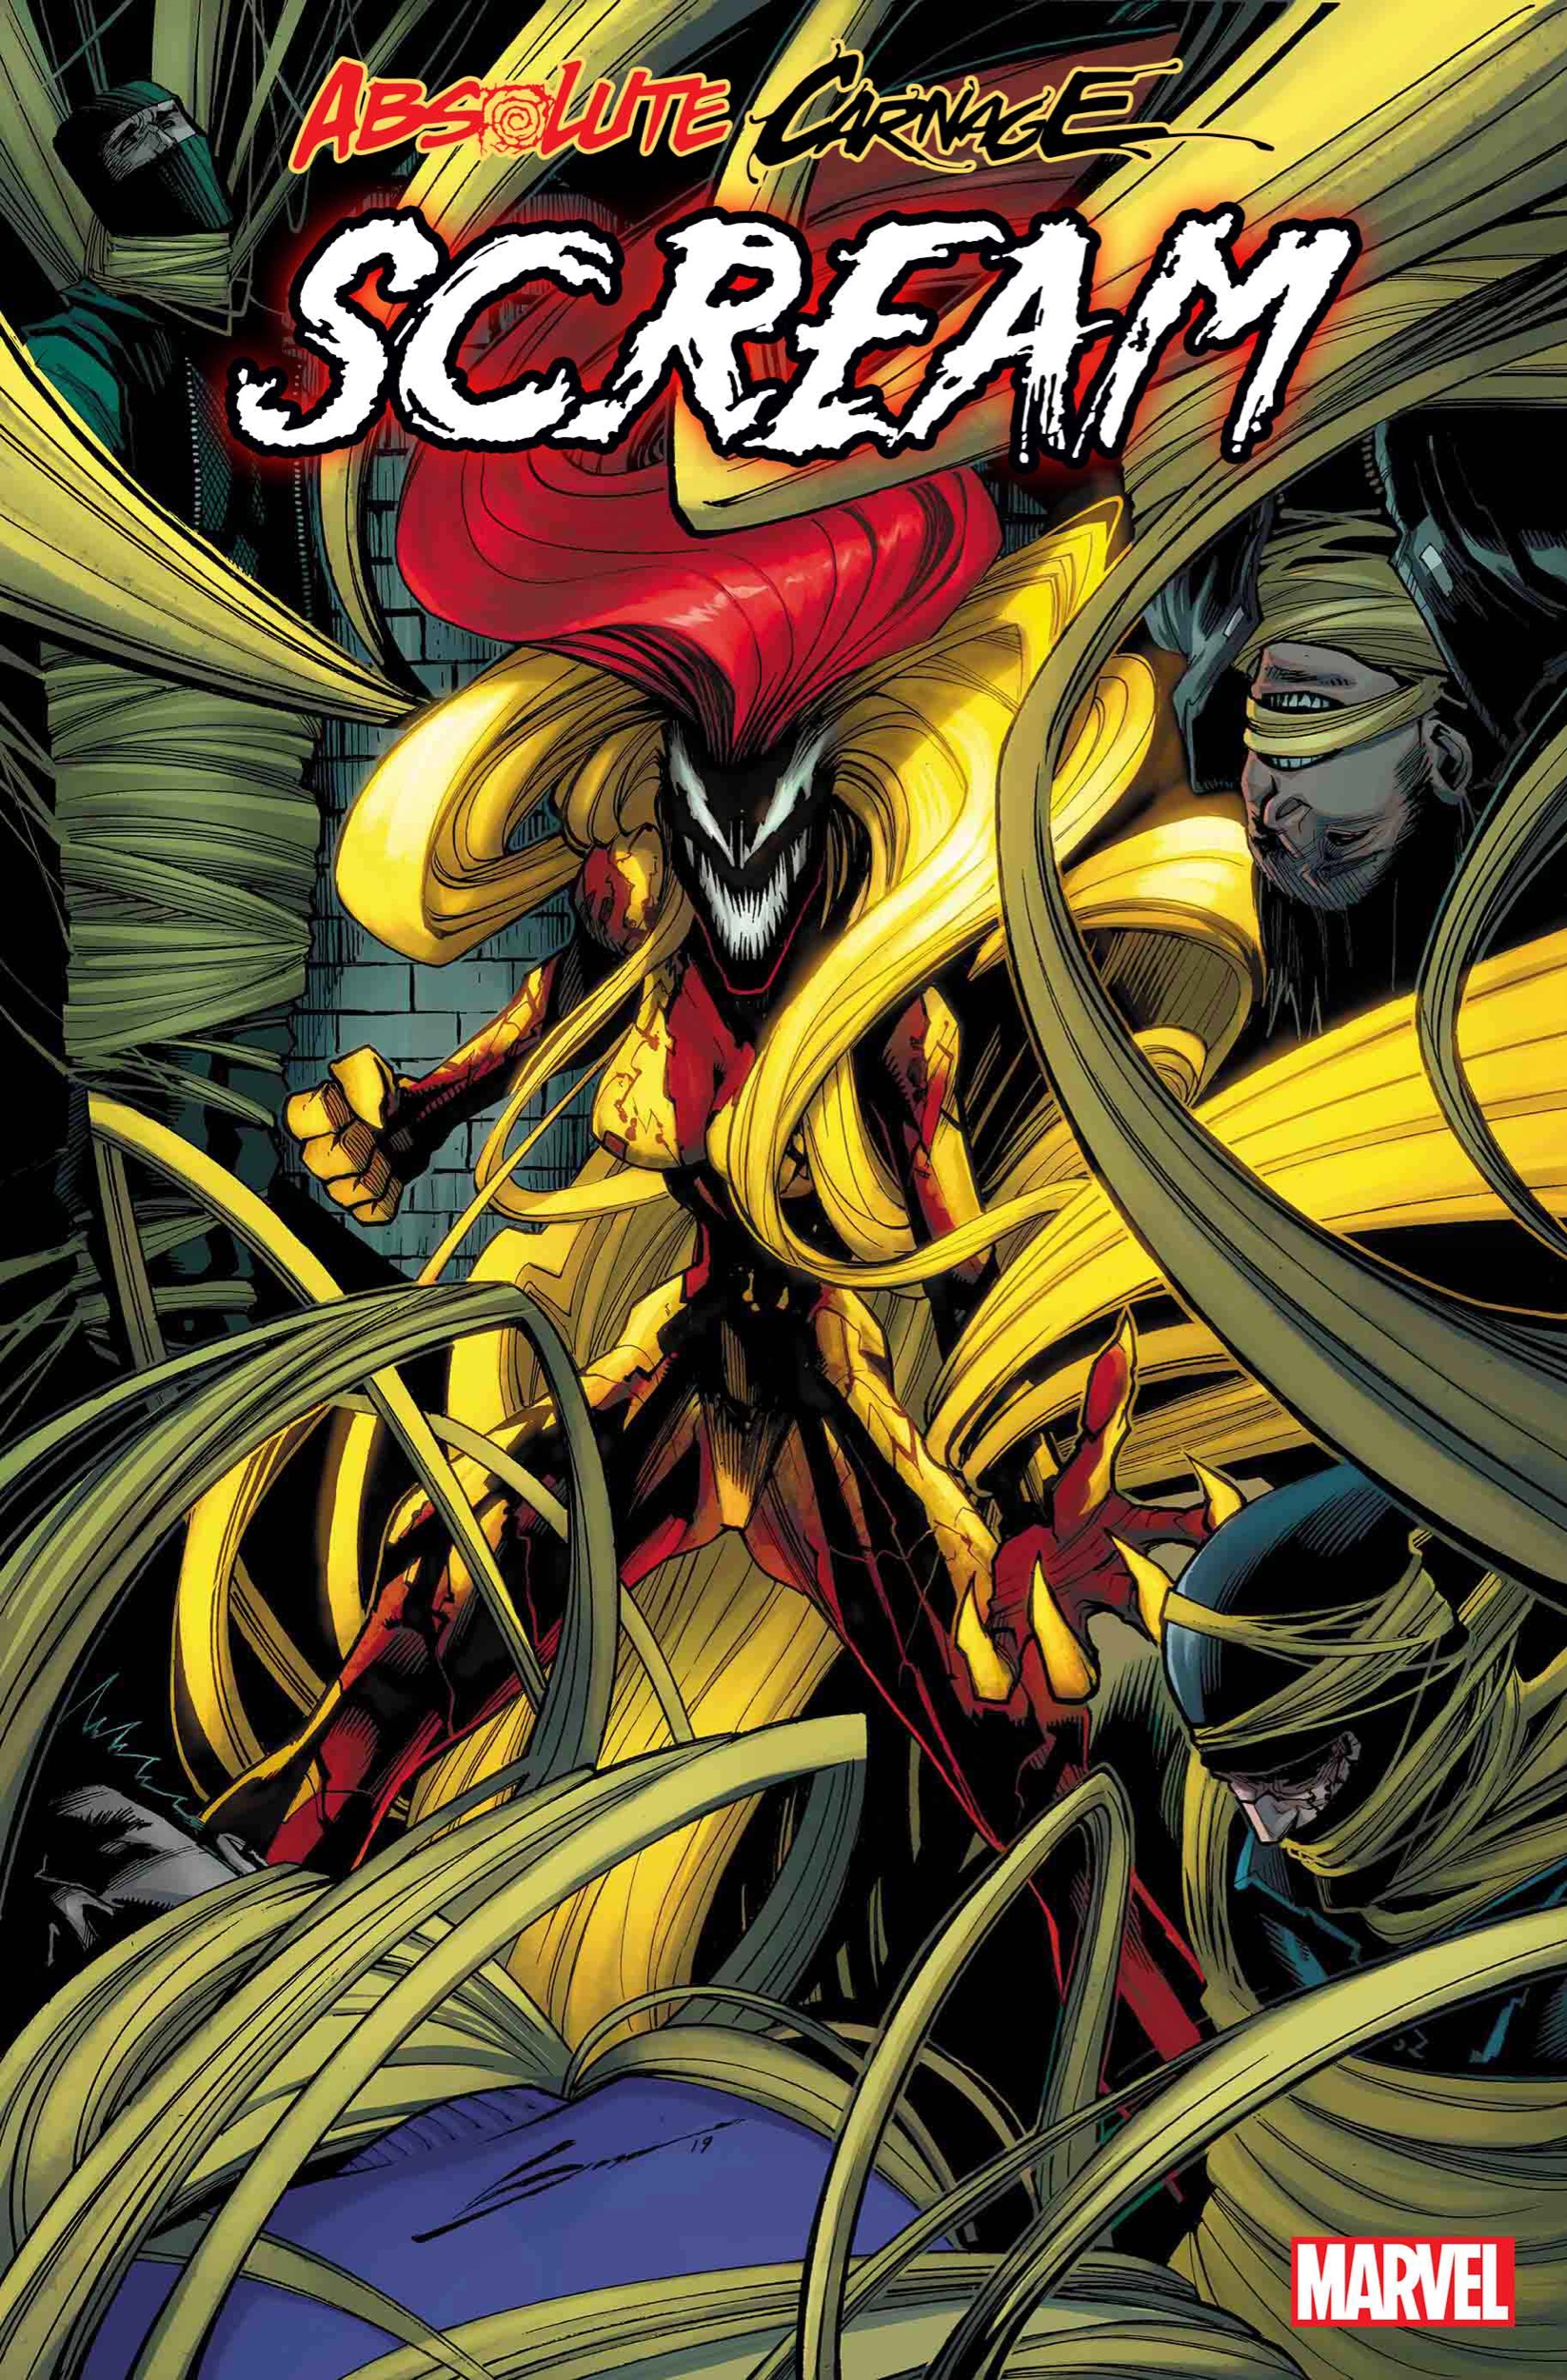 Absolute Carnage: Scream